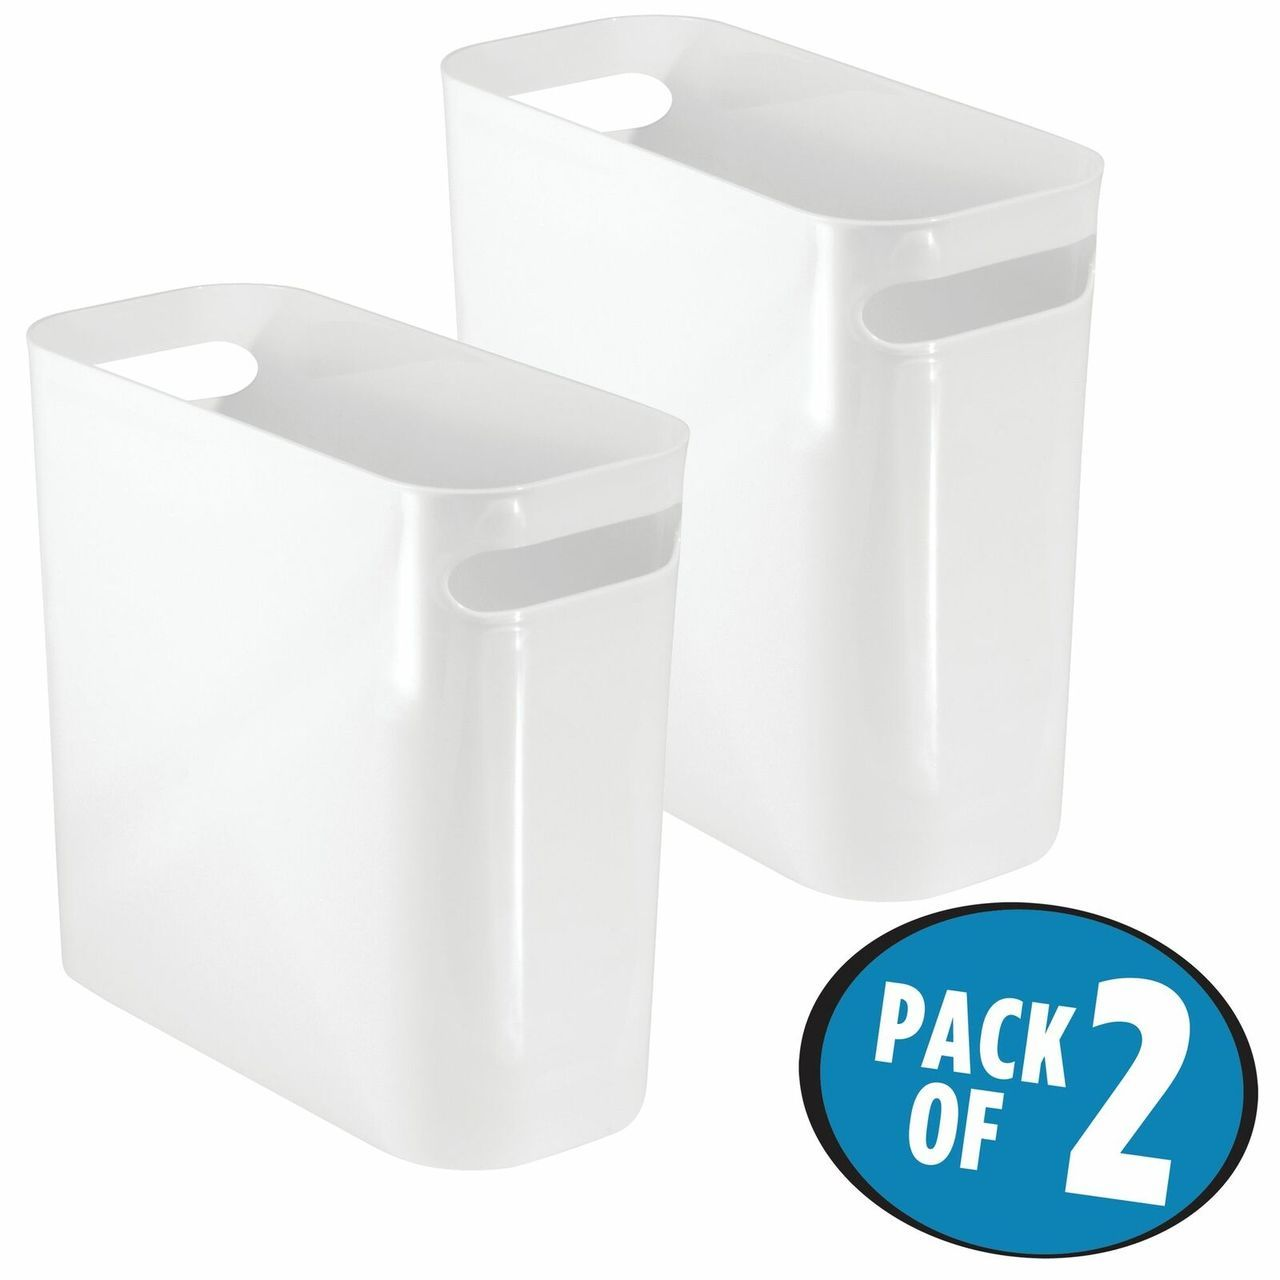 10 High Plastic Slim Trash Can Garbage Bin In White 10 75 X 5 X 10 Set Of 2 By Mdesign In 2020 Garbage Containers Bathroom Vanity Storage Cleaning Wipes